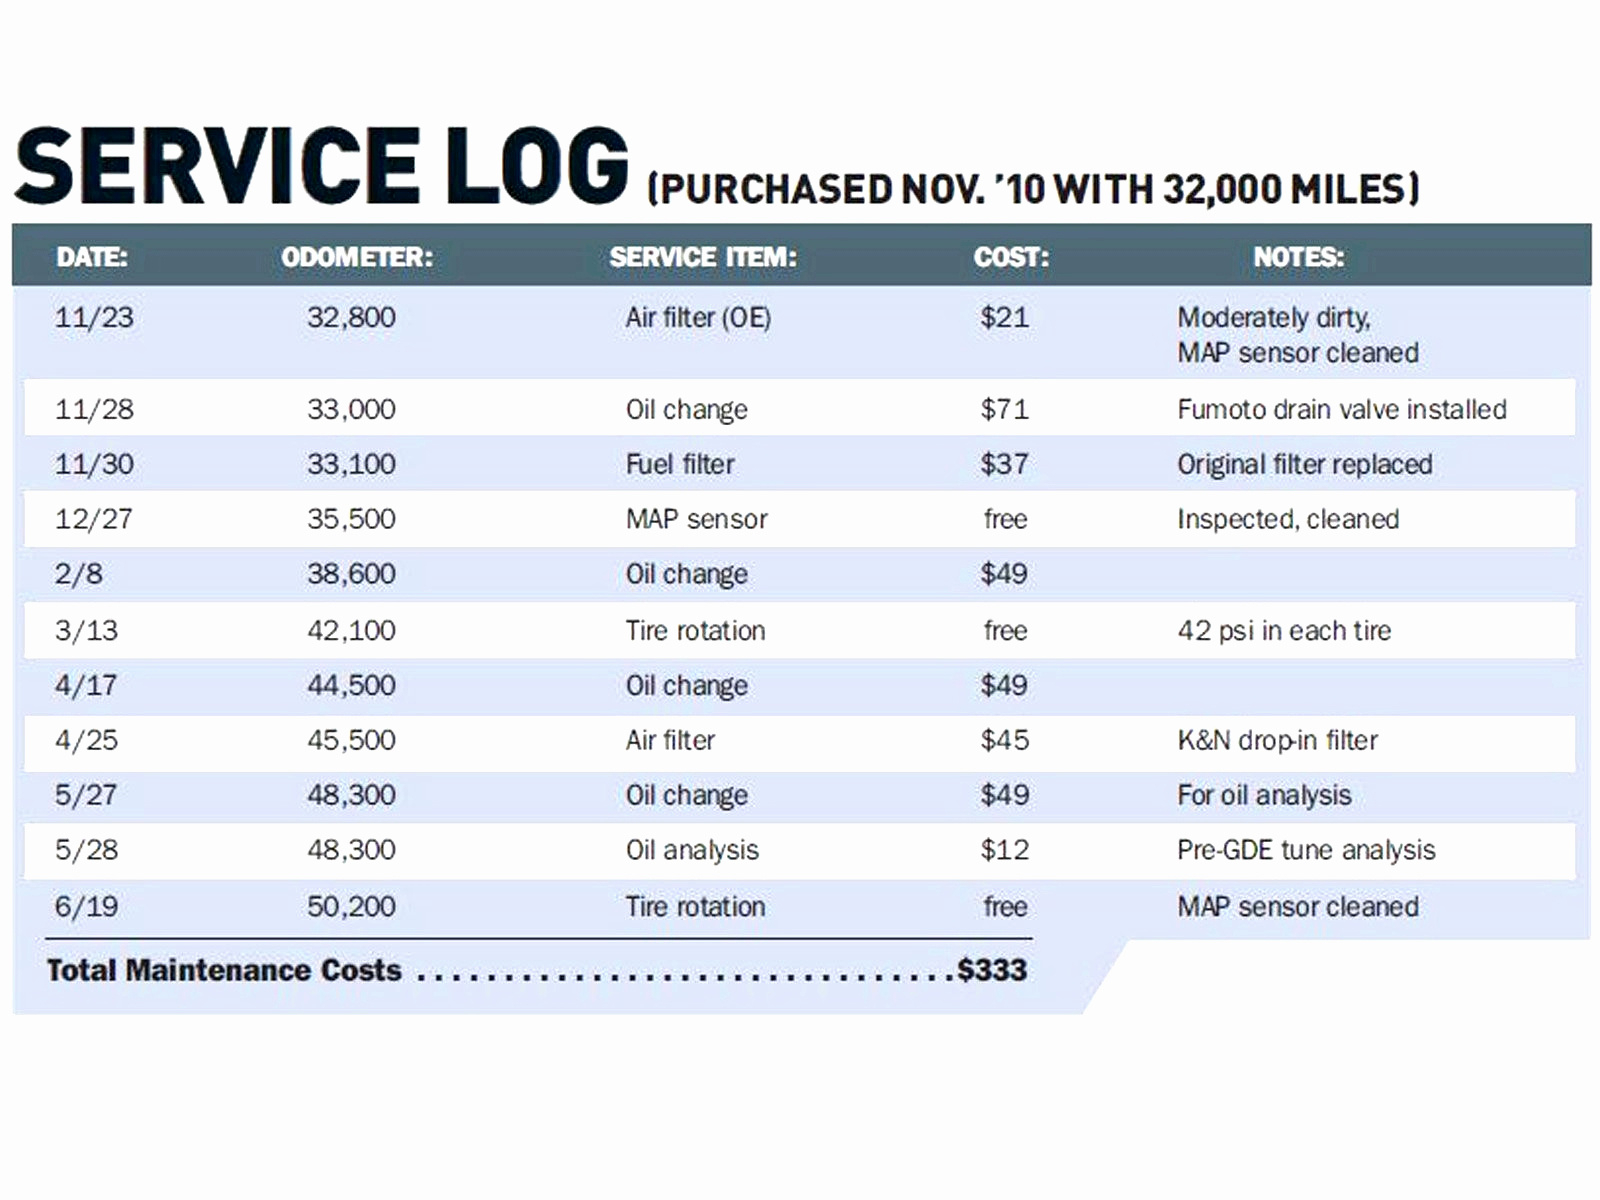 Truck Cost Per Mile Spreadsheet Intended For Trucking Cost Per Mile Spreadsheet – Spreadsheet Collections